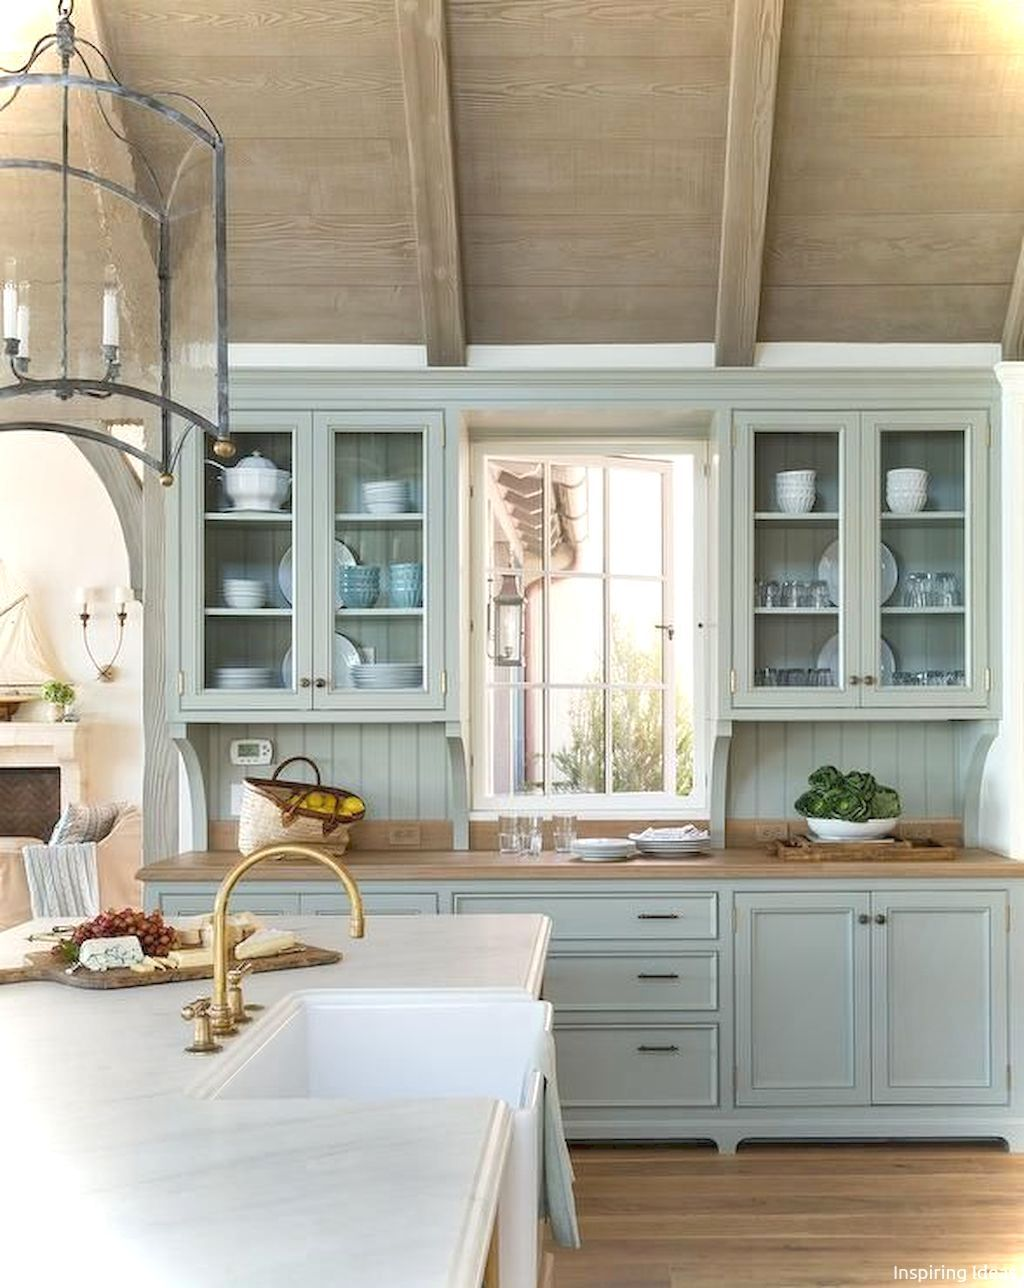 Adorable 44 Small Kitchen Ideas French Country Style https ...